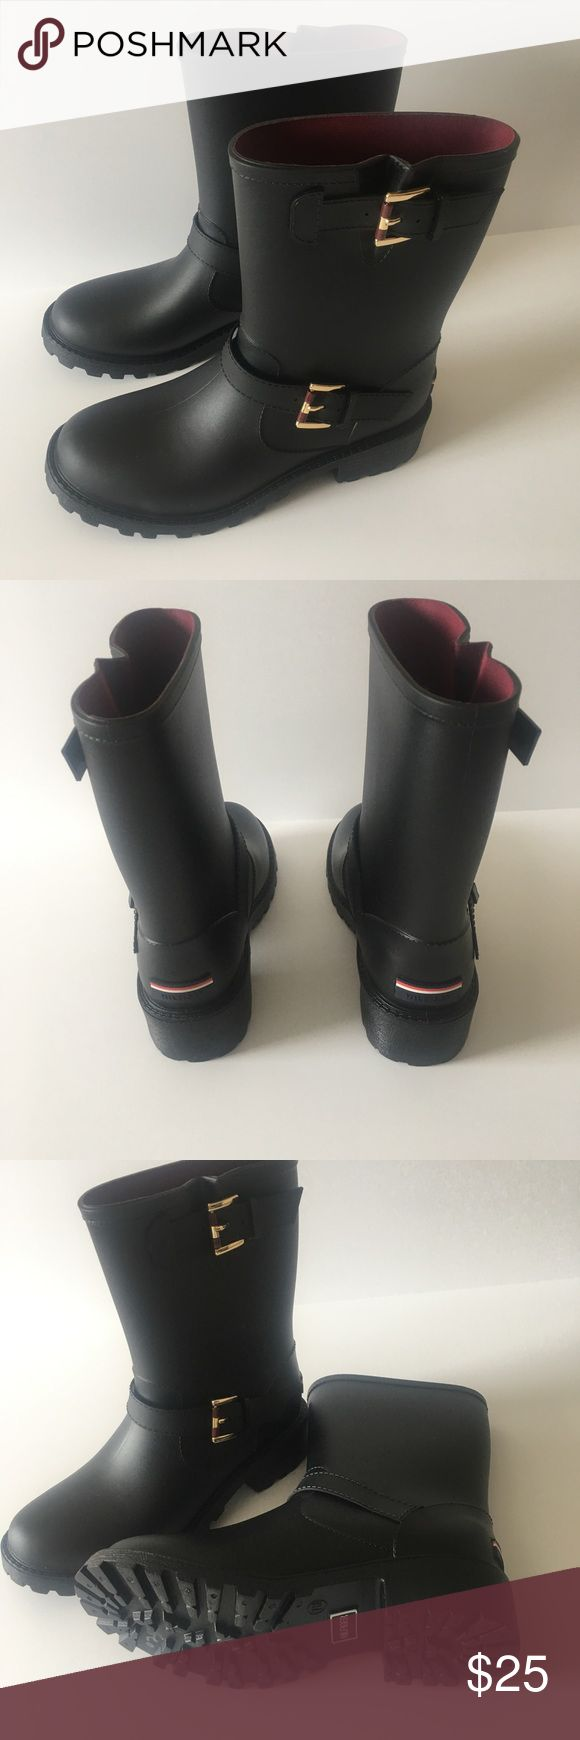 Women's Tommy Hilfiger Rain Boots Brand New, Black Tommy Hilfiger Rain Boots Size 7. Tommy Hilfiger Shoes Winter & Rain Boots